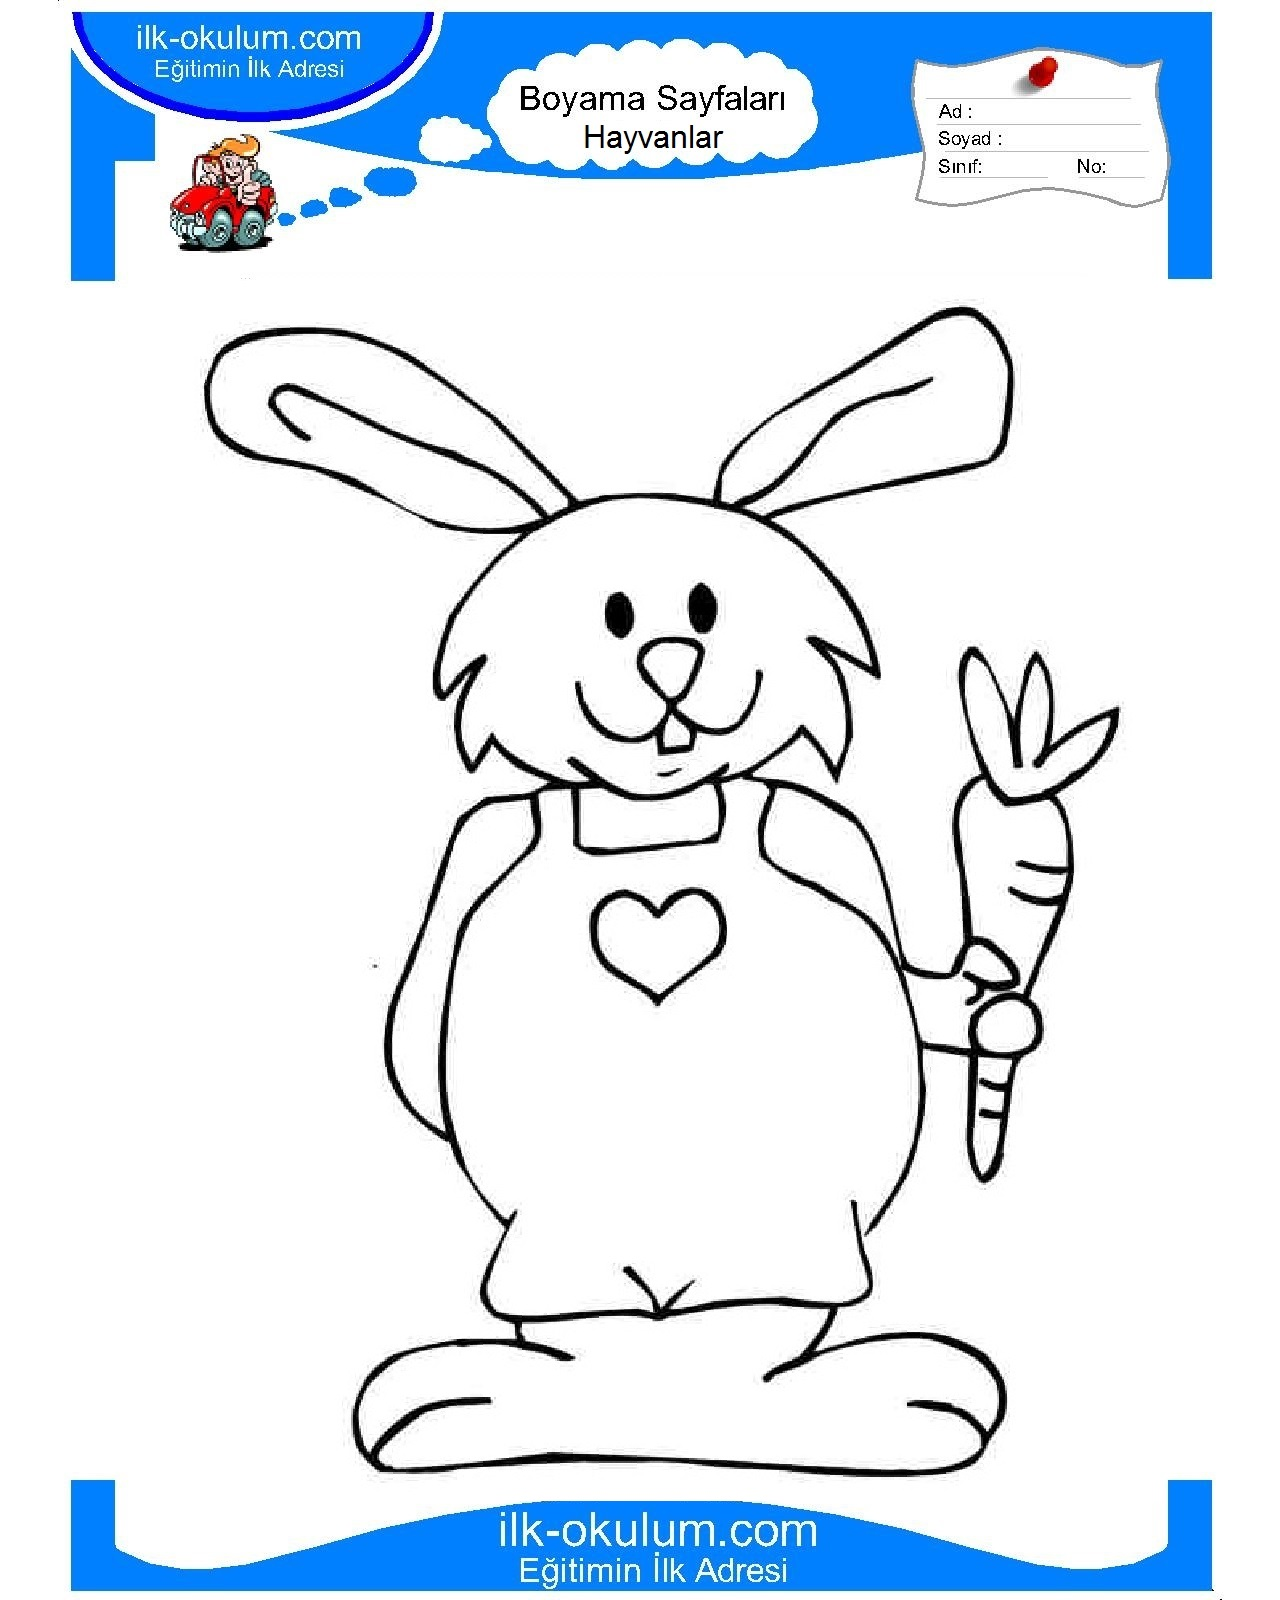 14 Easy Guitar Chords For Beginners - National Guitar Academy Easter bunny pictures to color free